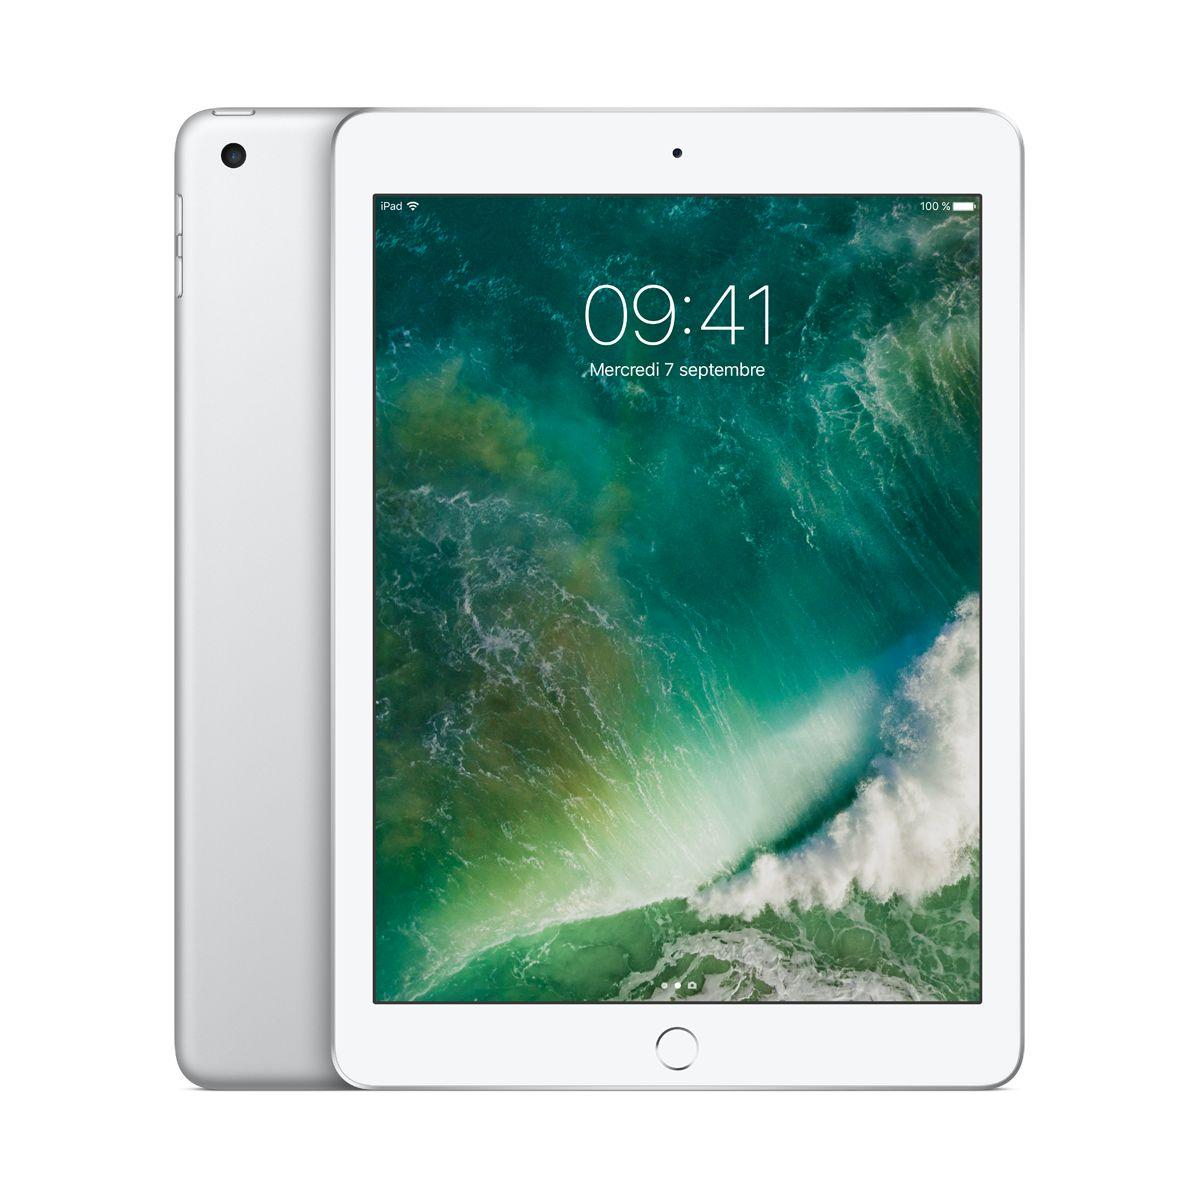 Tablette ipad new ipad 32go argent (photo)